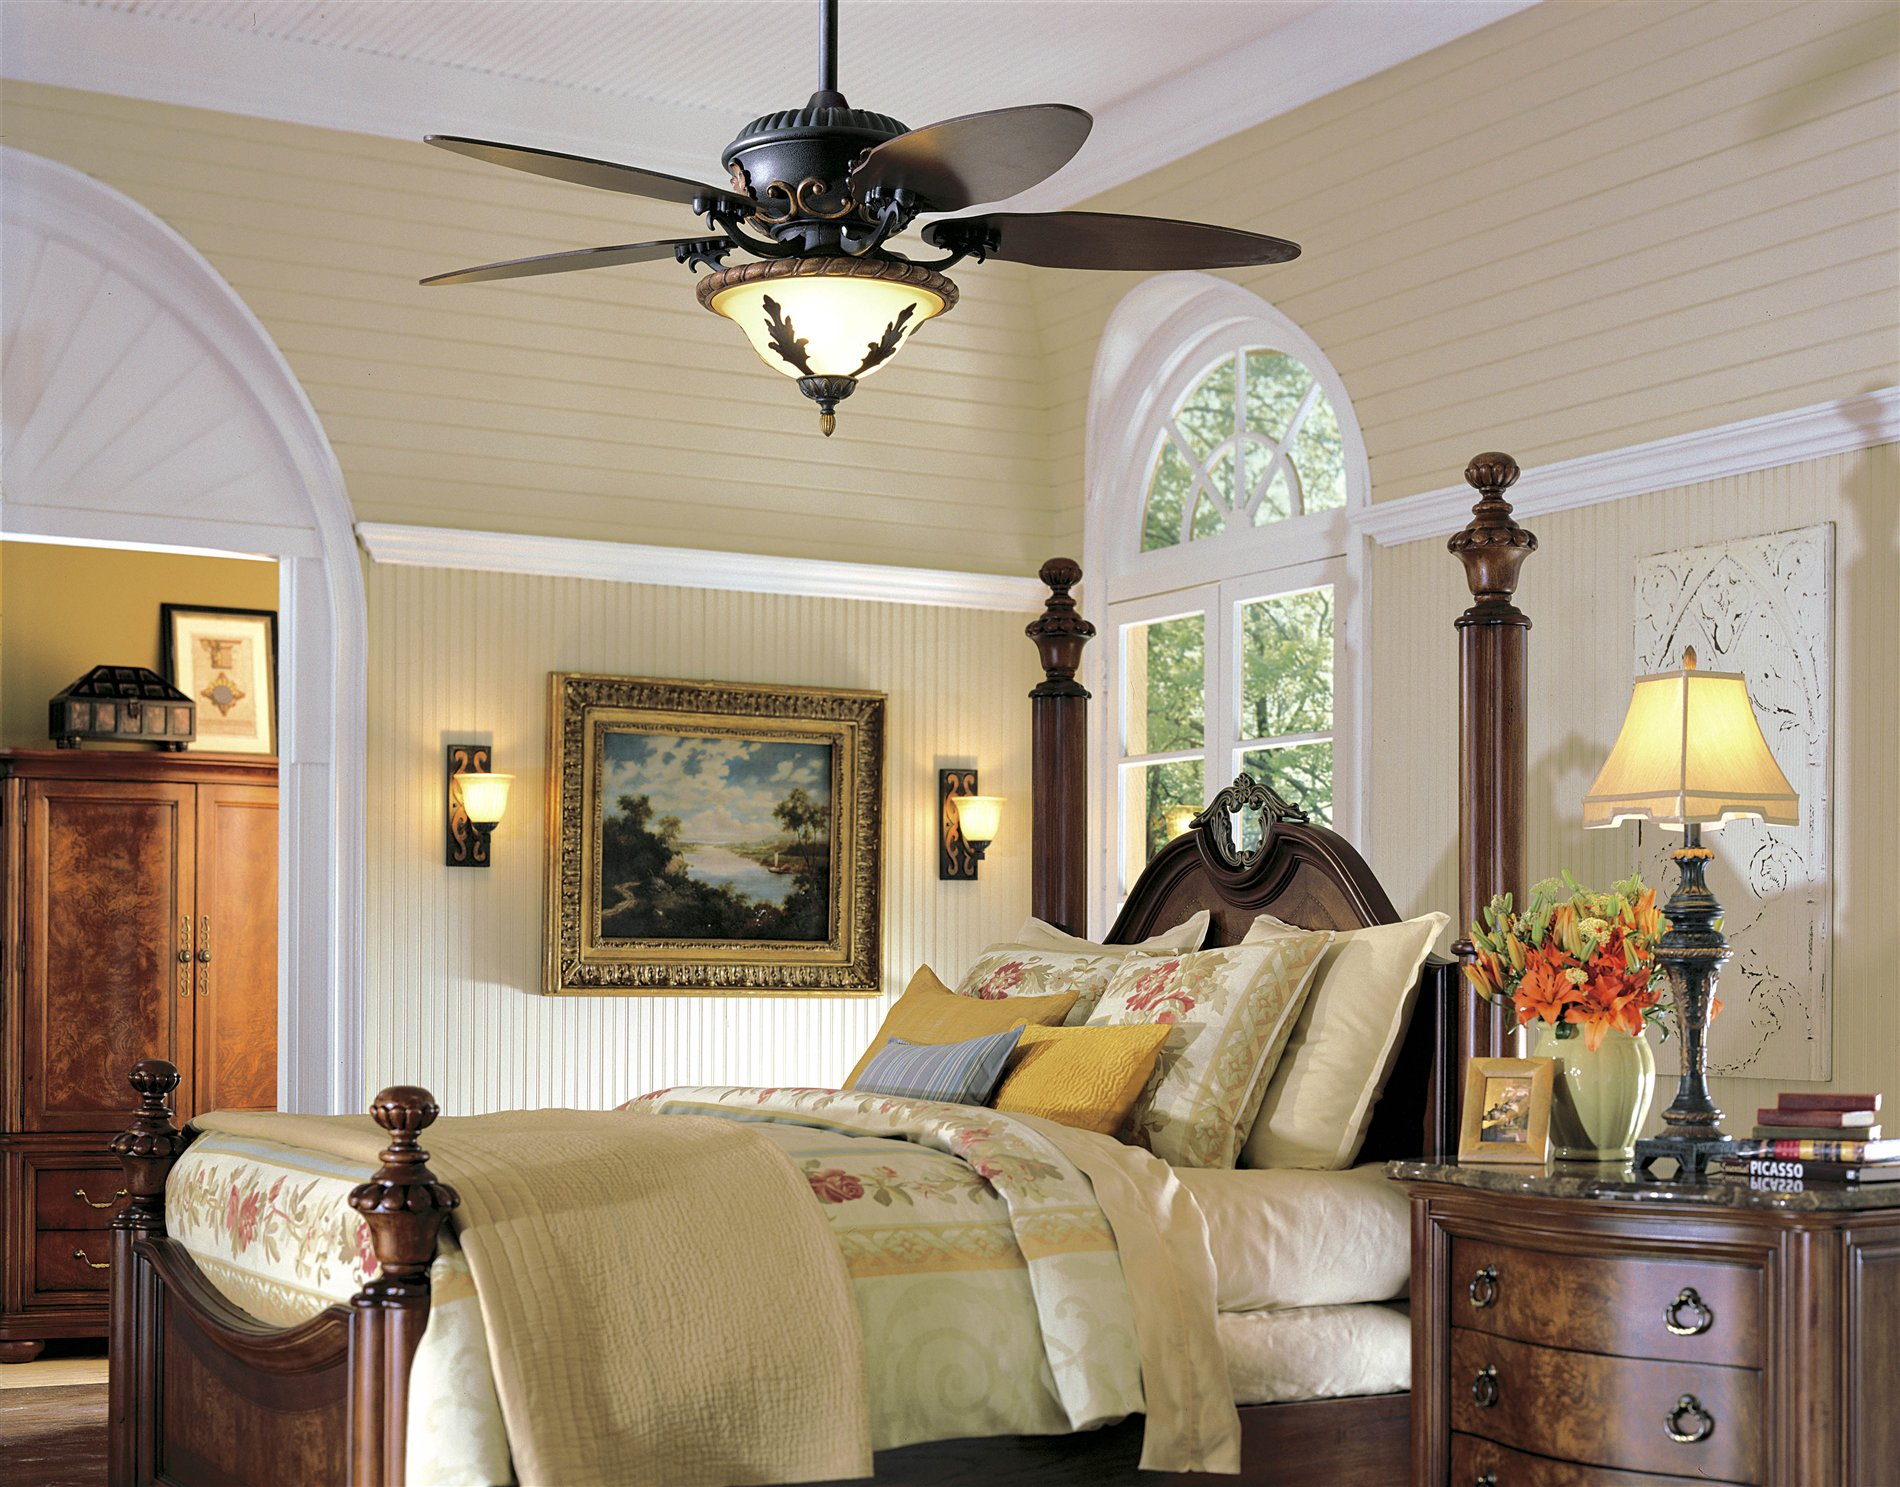 How To Choose Ceiling Fans According To Your Needs